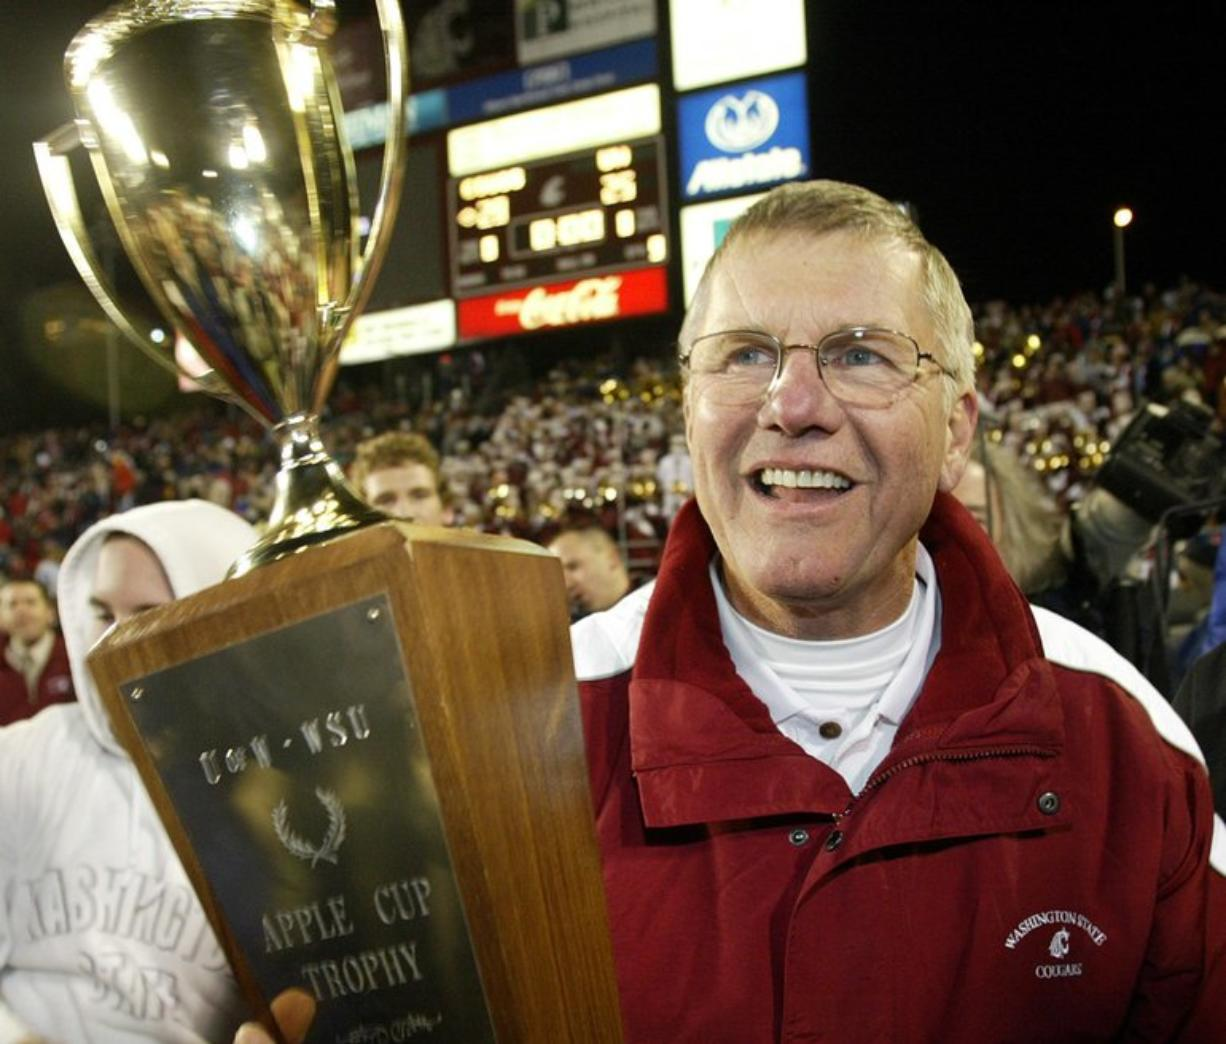 ** FILE ** Washington State head coach Bill Doba holds the Apple Cup trophy after his team beat Washington 28-25 in this Nov. 20, 2004, file photo in Pullman, Wash. Doba is looking for a little consistency this season after last year's team was slowed by injuries and inexperience and fell to a 5-6 record. (AP Photo/Ted S.